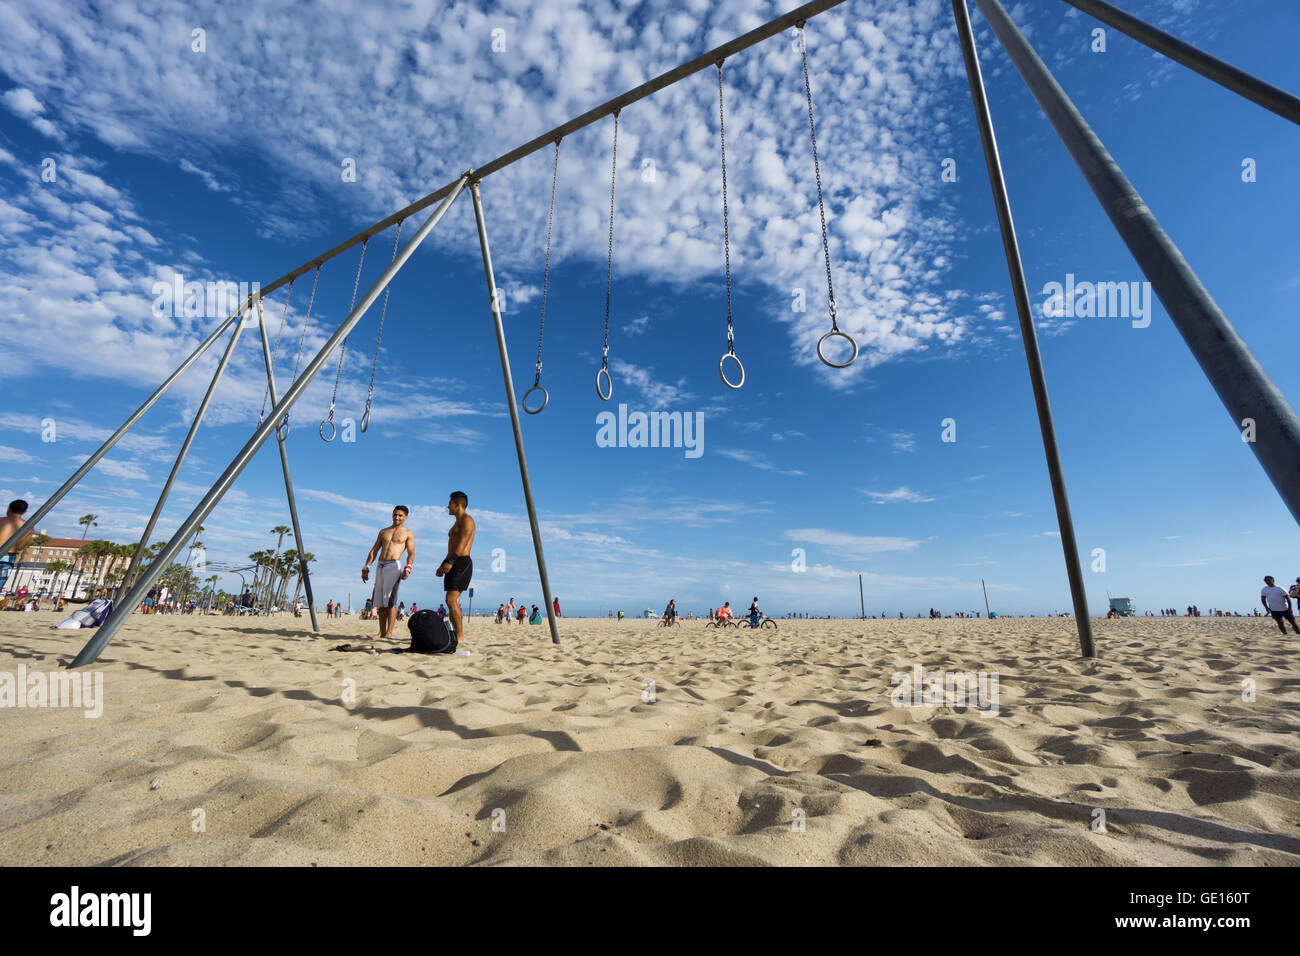 SANTA MONICA, USA - JUNE 18, 2016: Muscle beach is the birth place of the physical fitness boom in the US - Stock Image